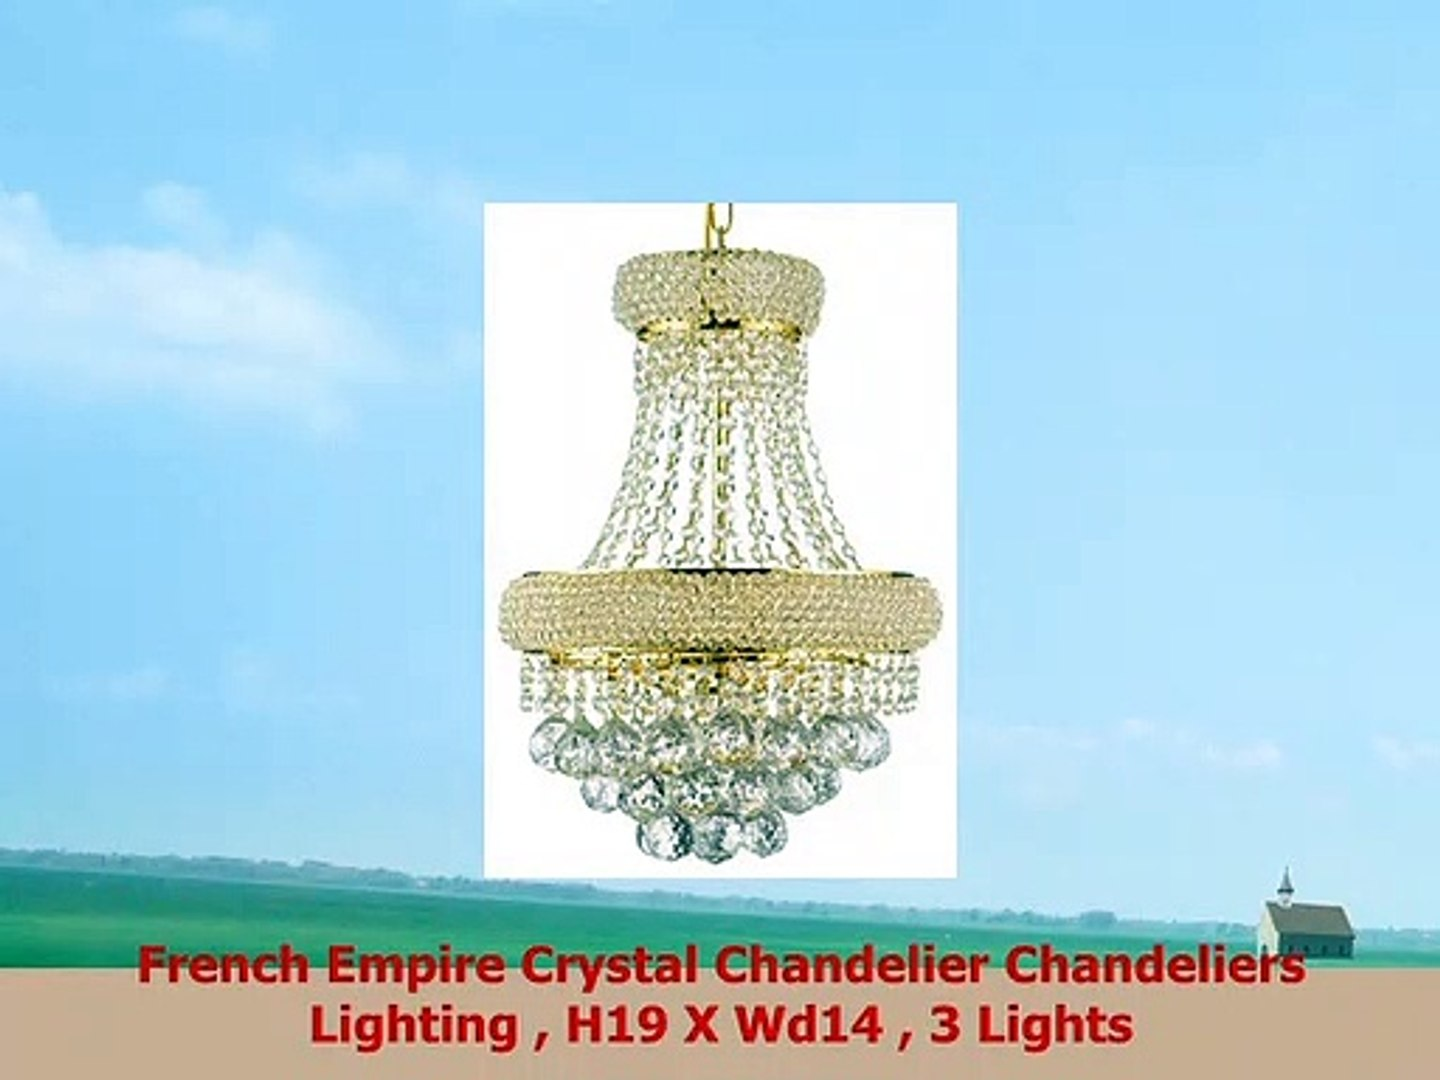 French Empire Crystal Chandelier Chandeliers Lighting H19 X Wd14 3 Lights